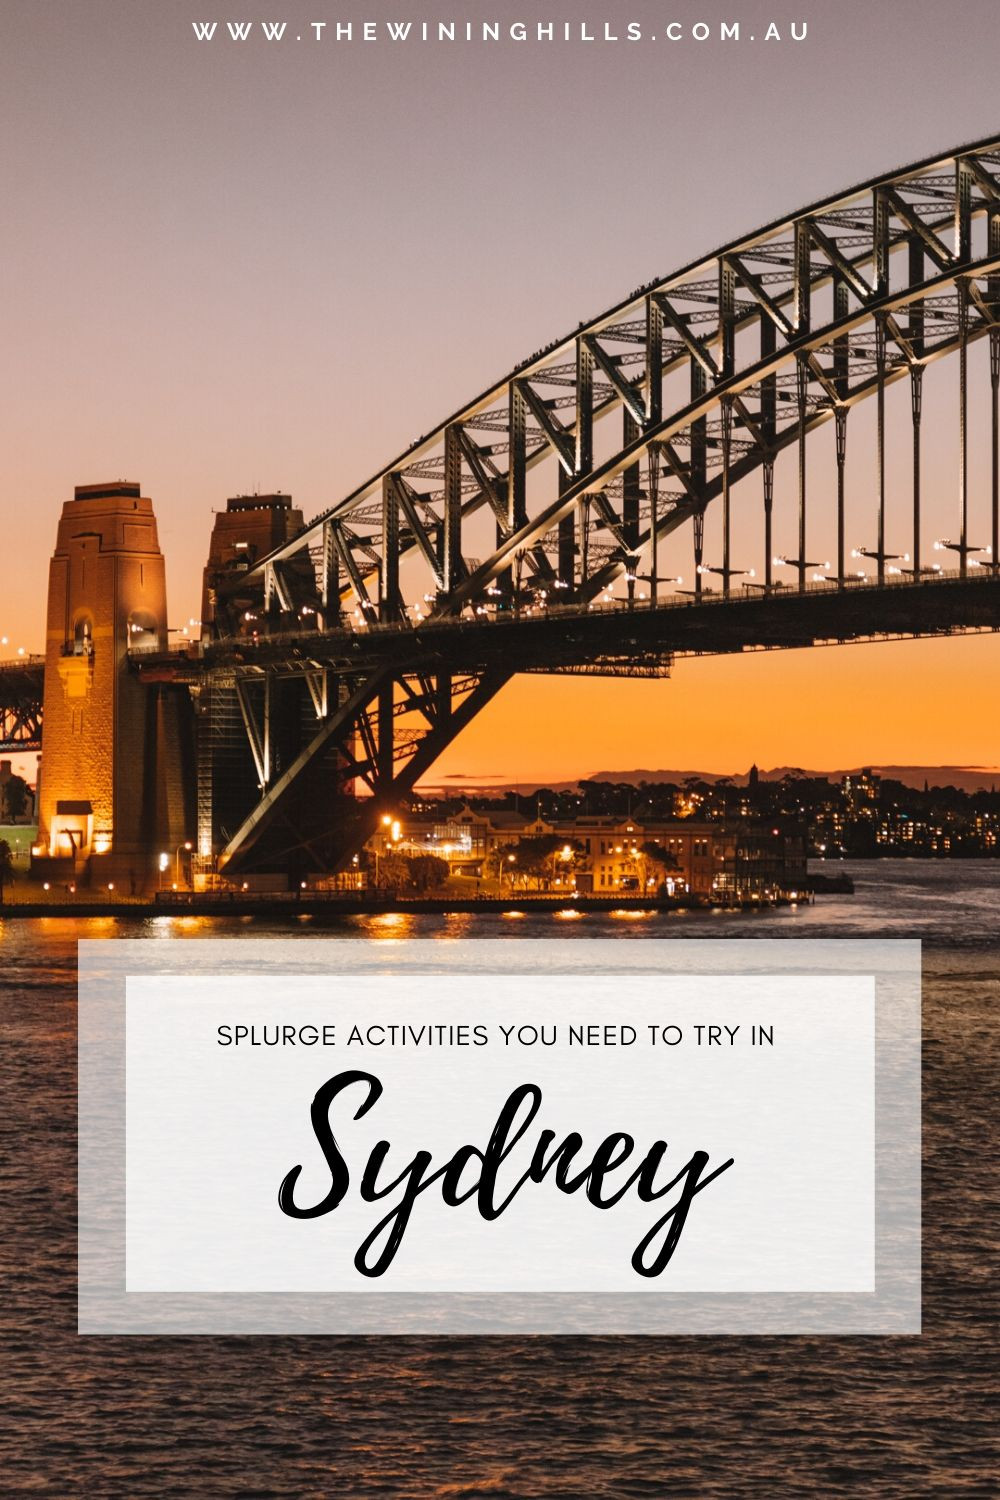 Best Splurge activities in Sydney like helicopters, sea planes, and private yachts!